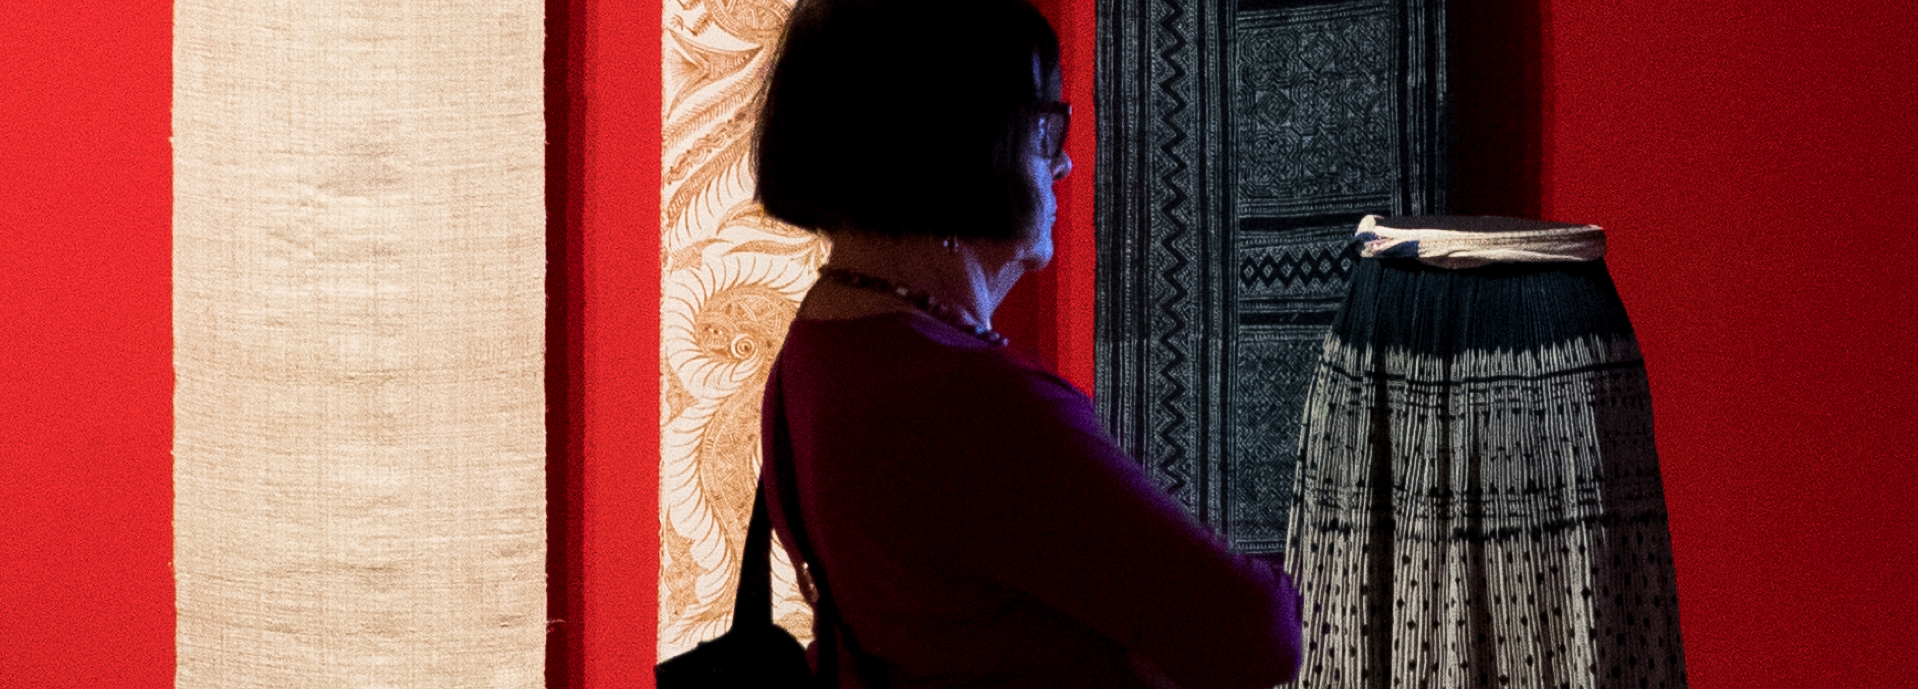 A woman looks at a textile exhibit